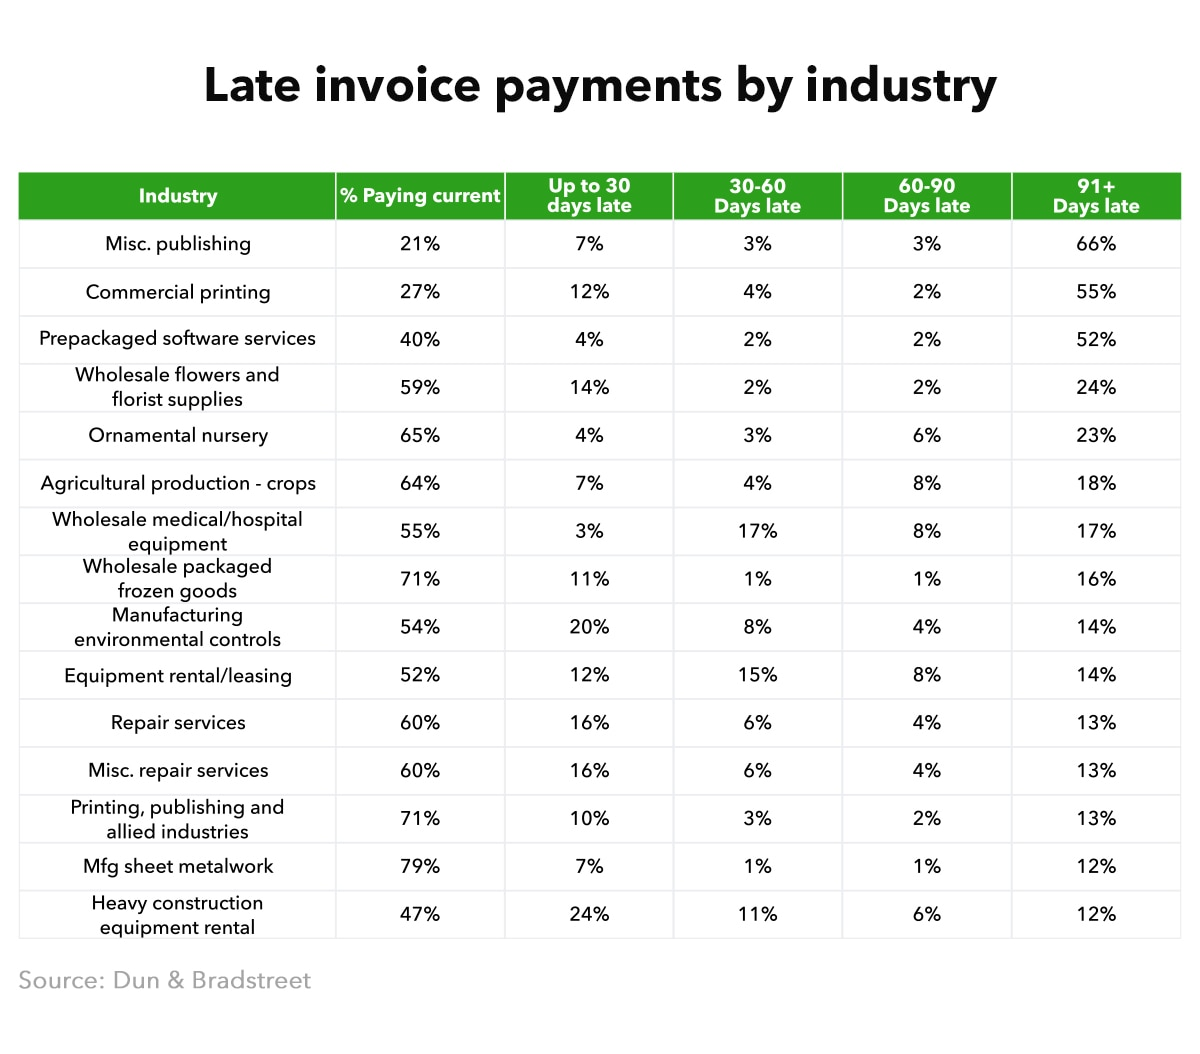 Late invoice payment statistics by industry.